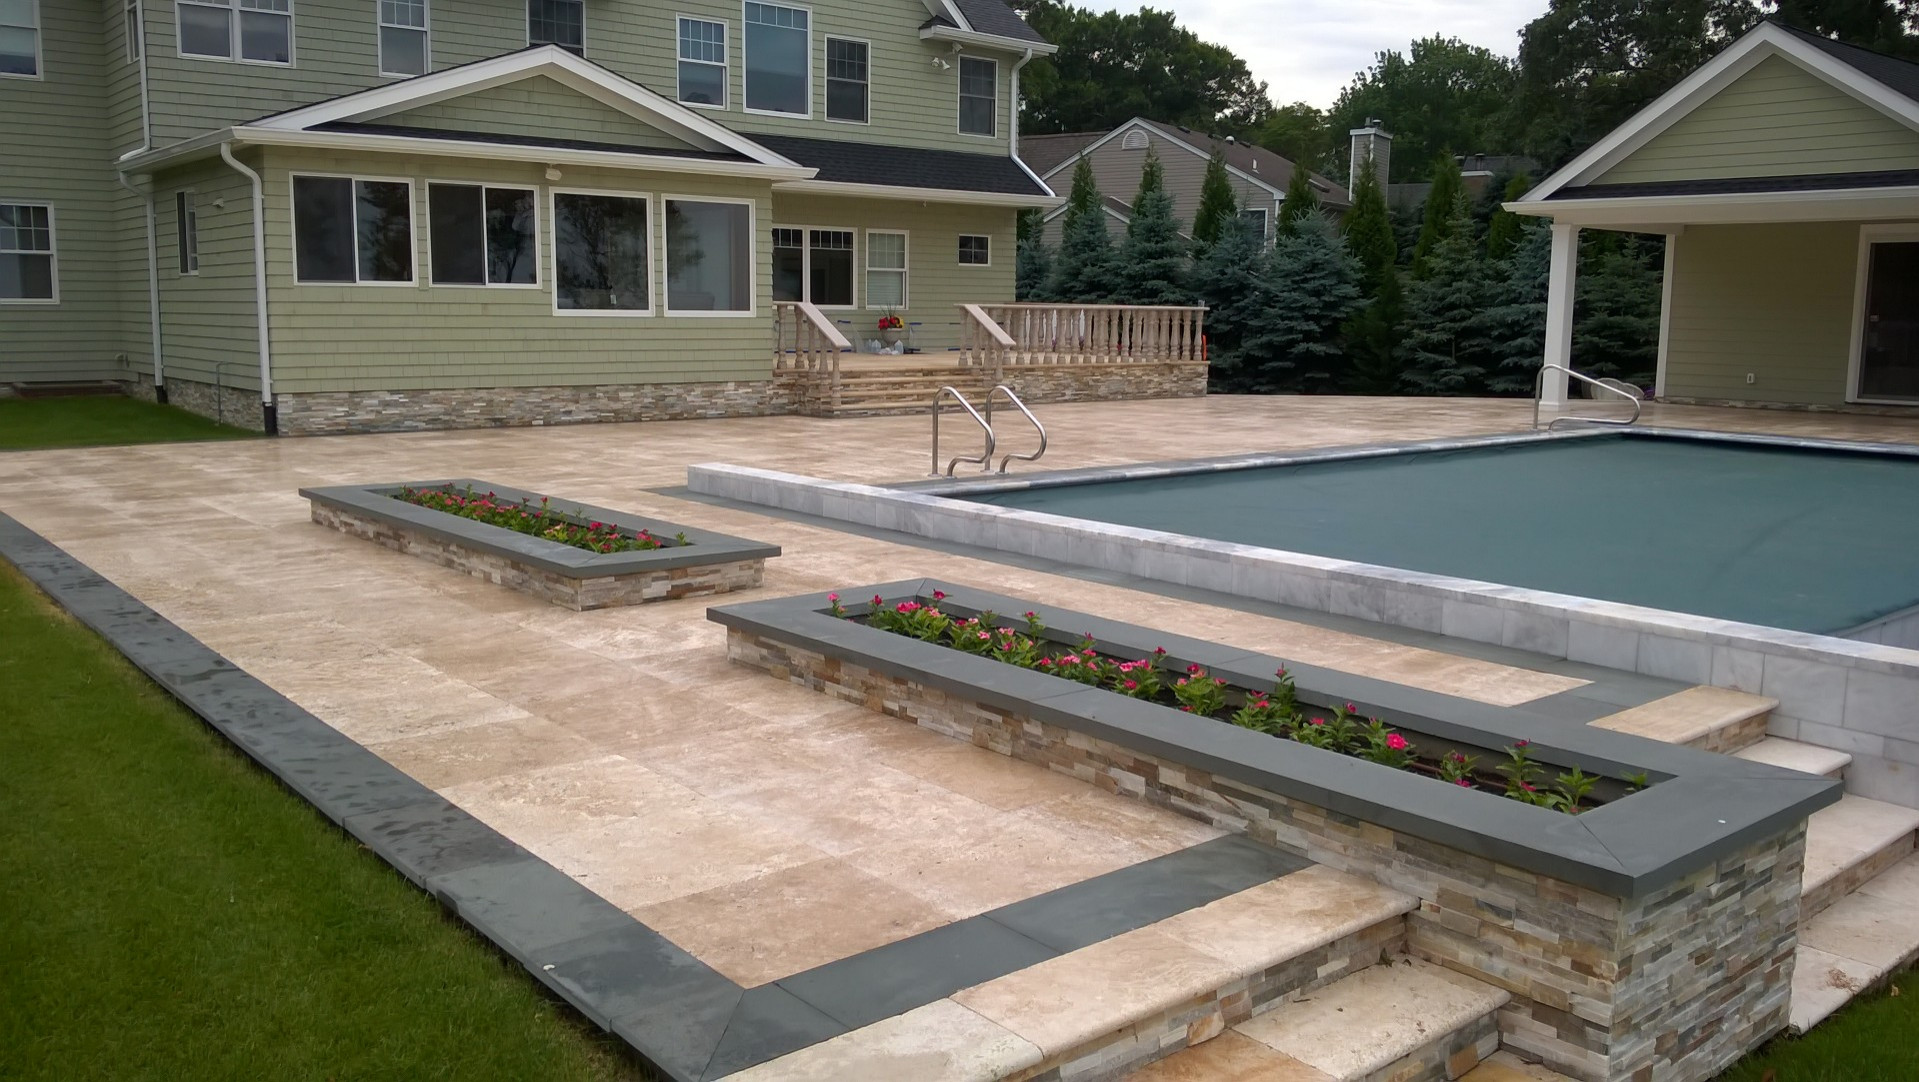 Travertine and bluestone patio with marble coping